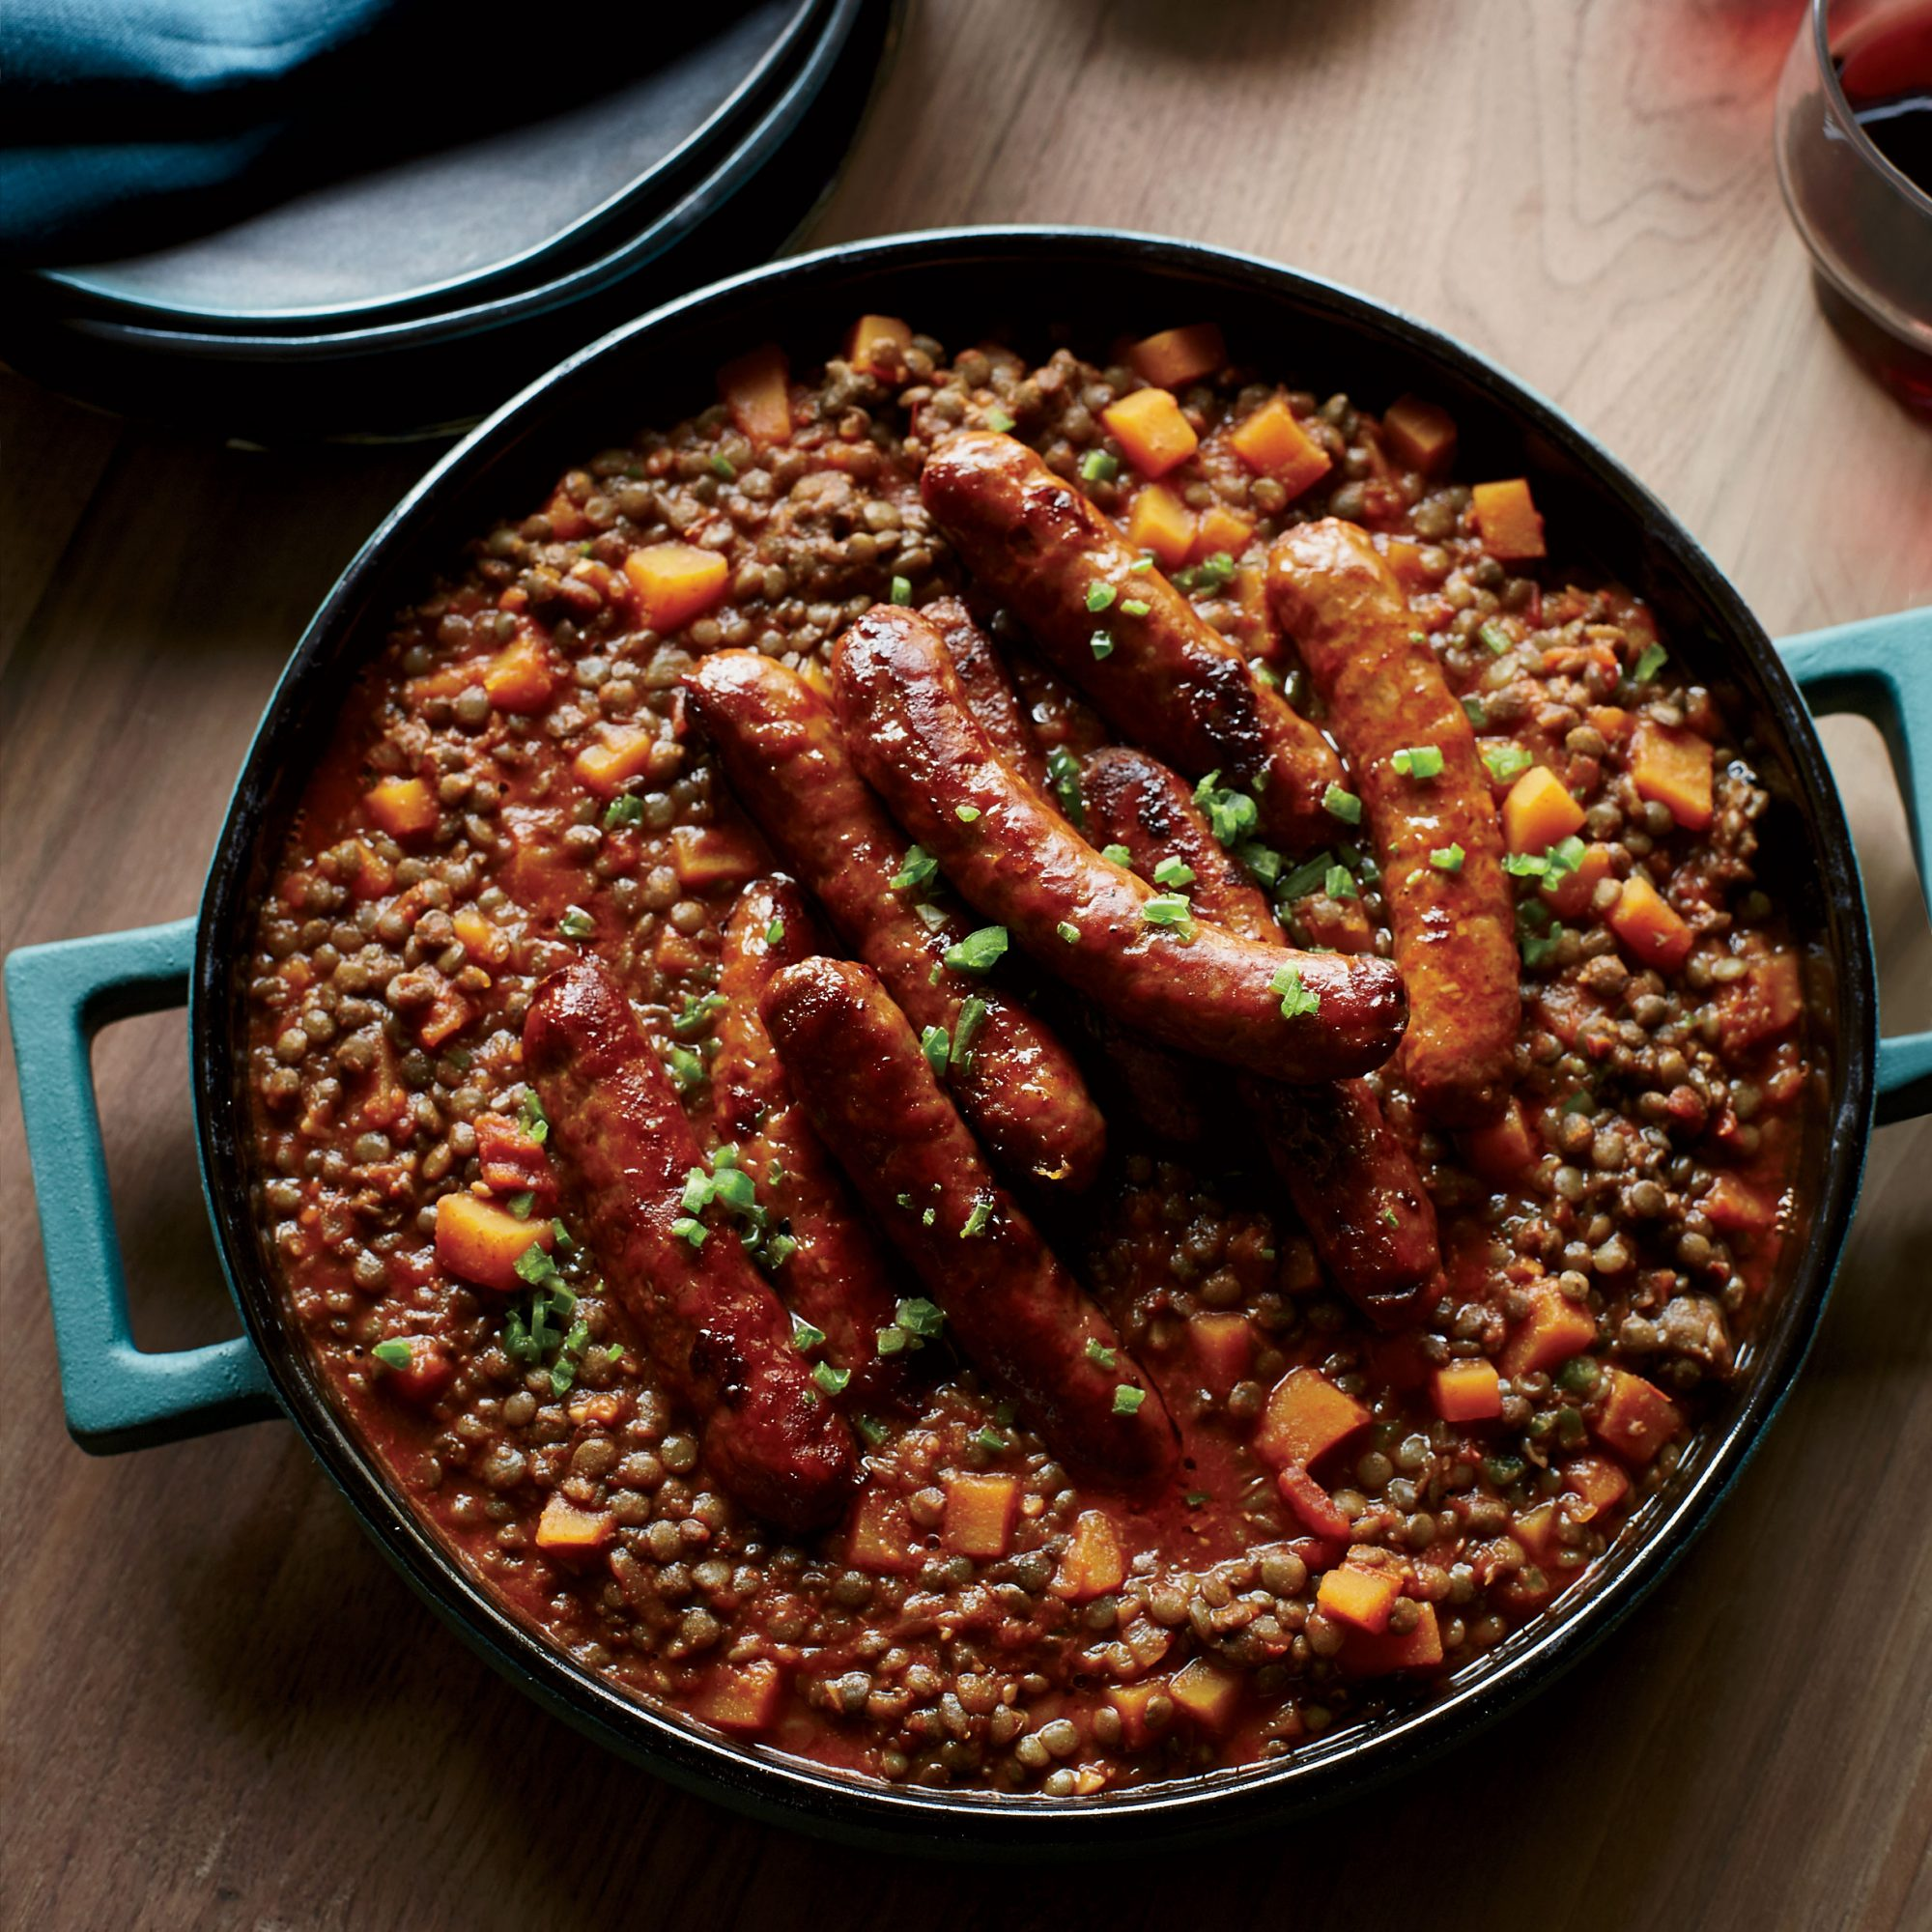 Lentils with Butternut Squash and Merguez Sausage